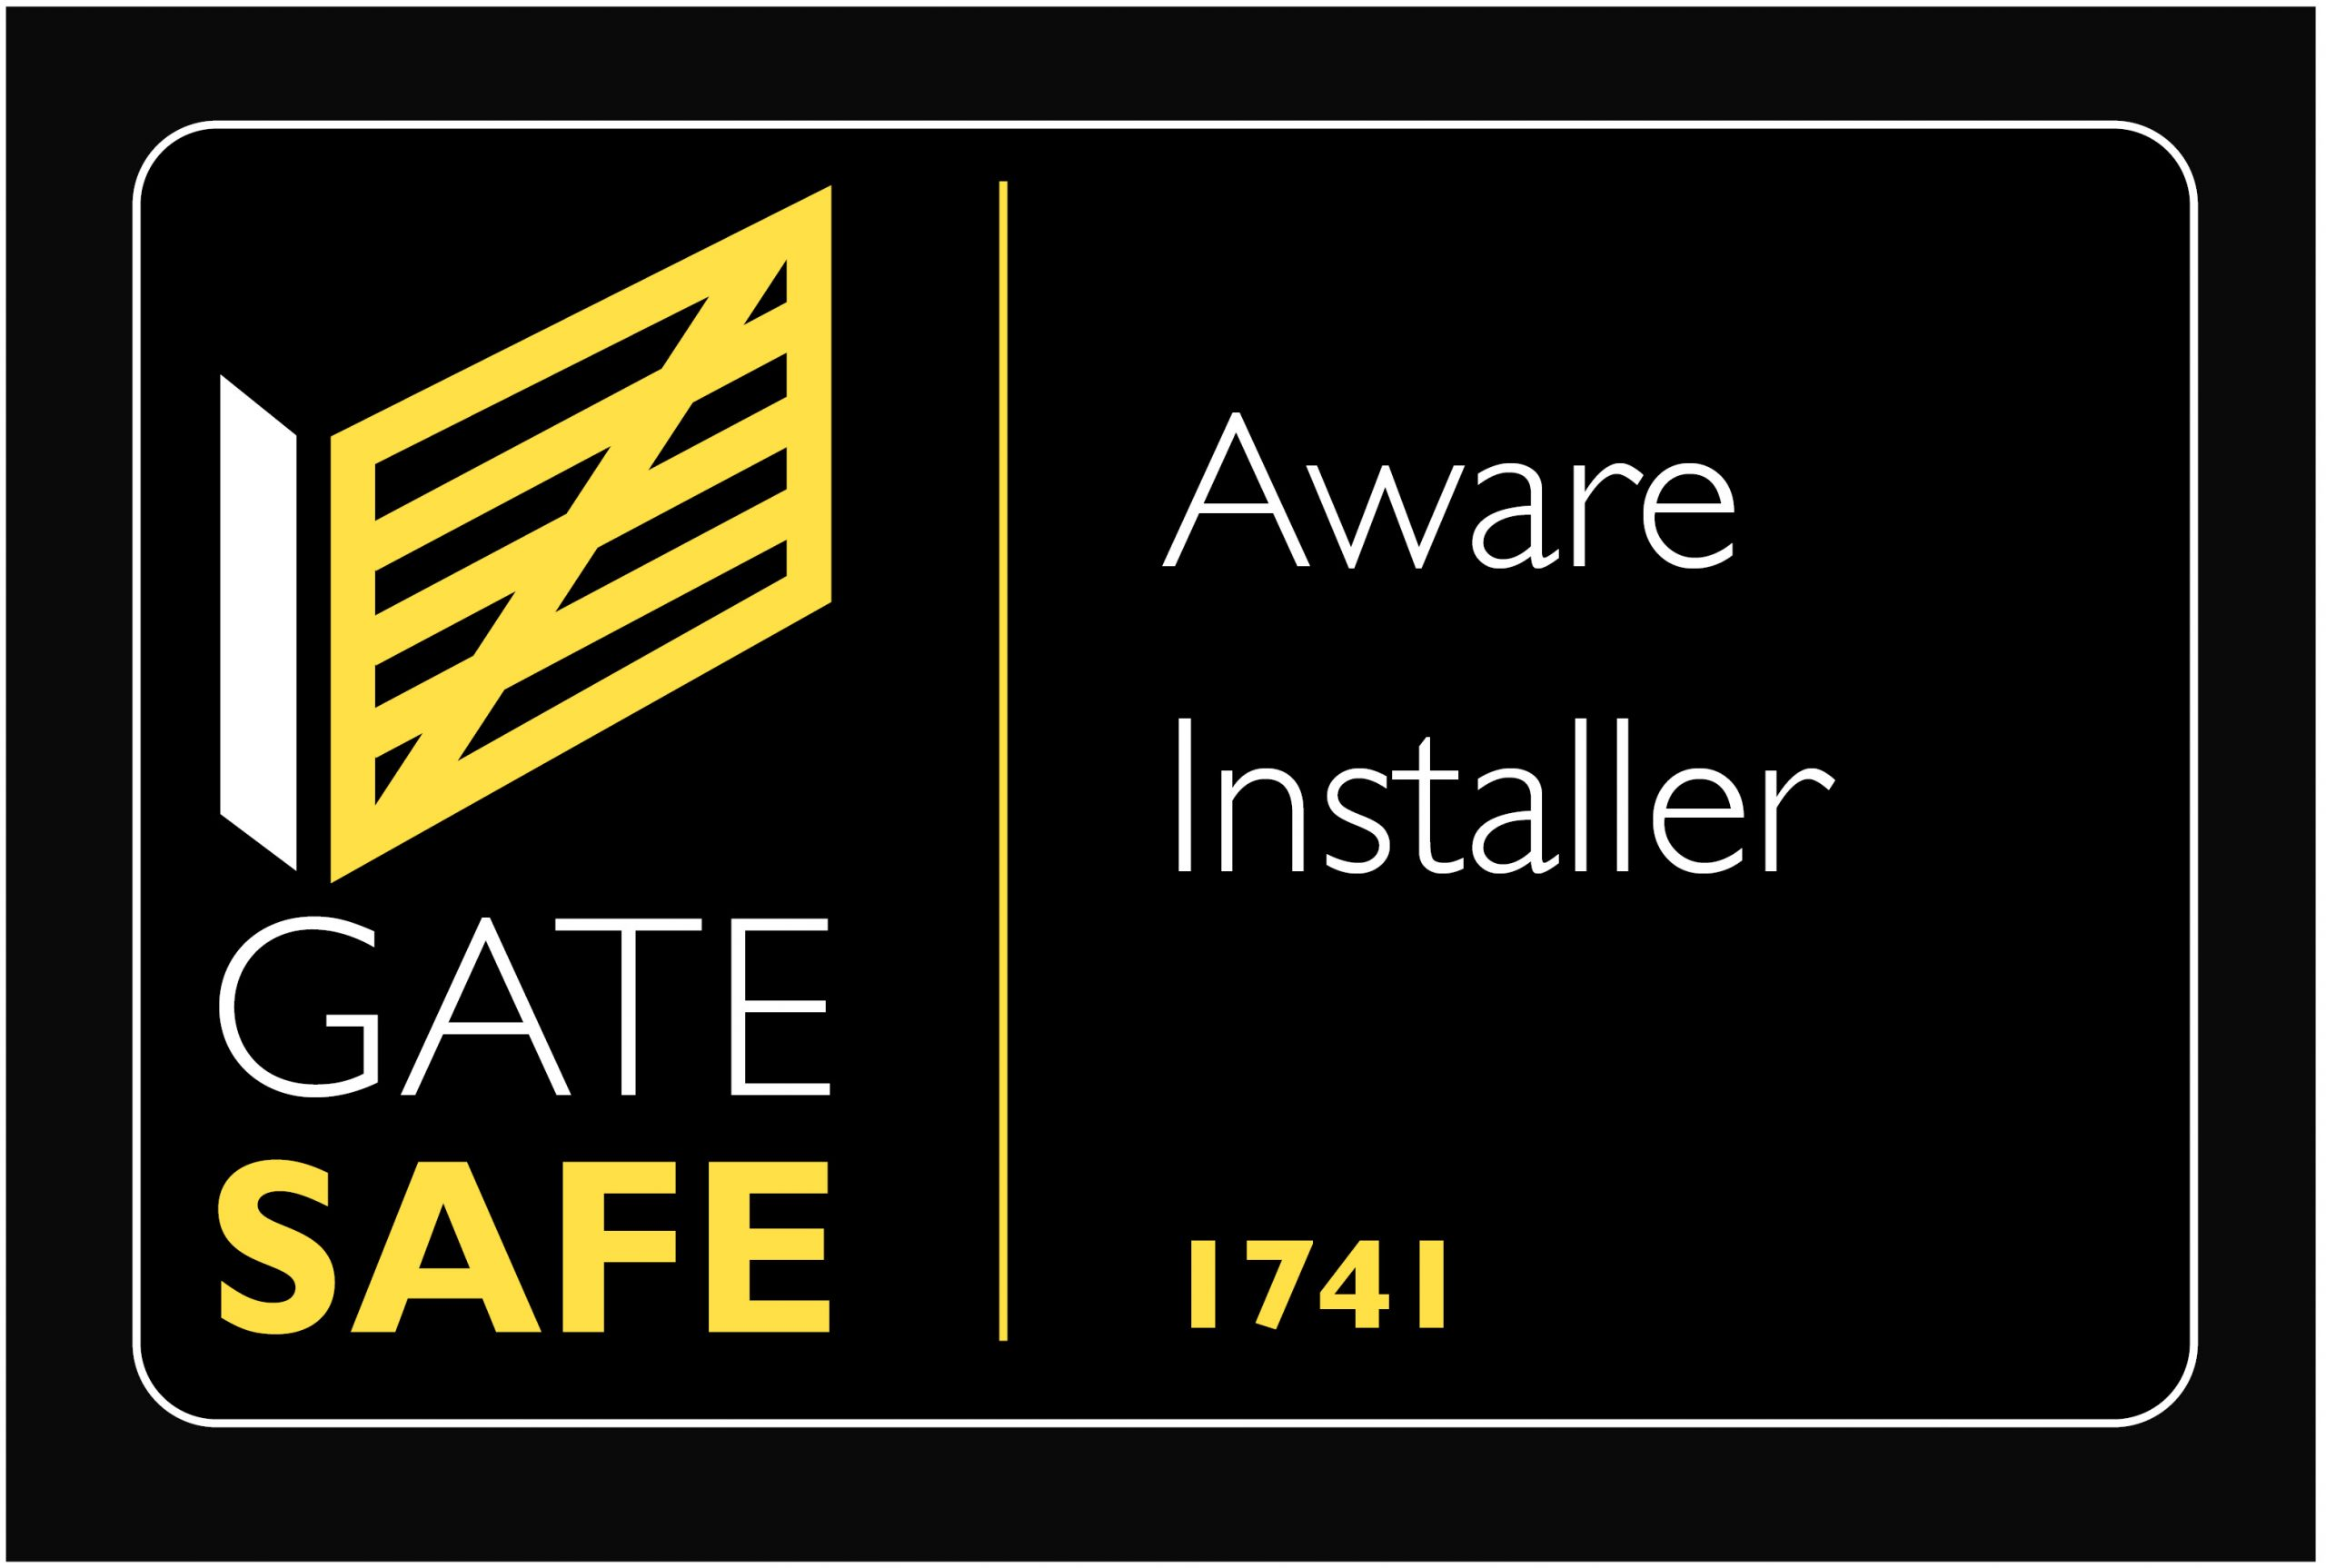 Gate safe logo company 1741 Hawk Property Protection